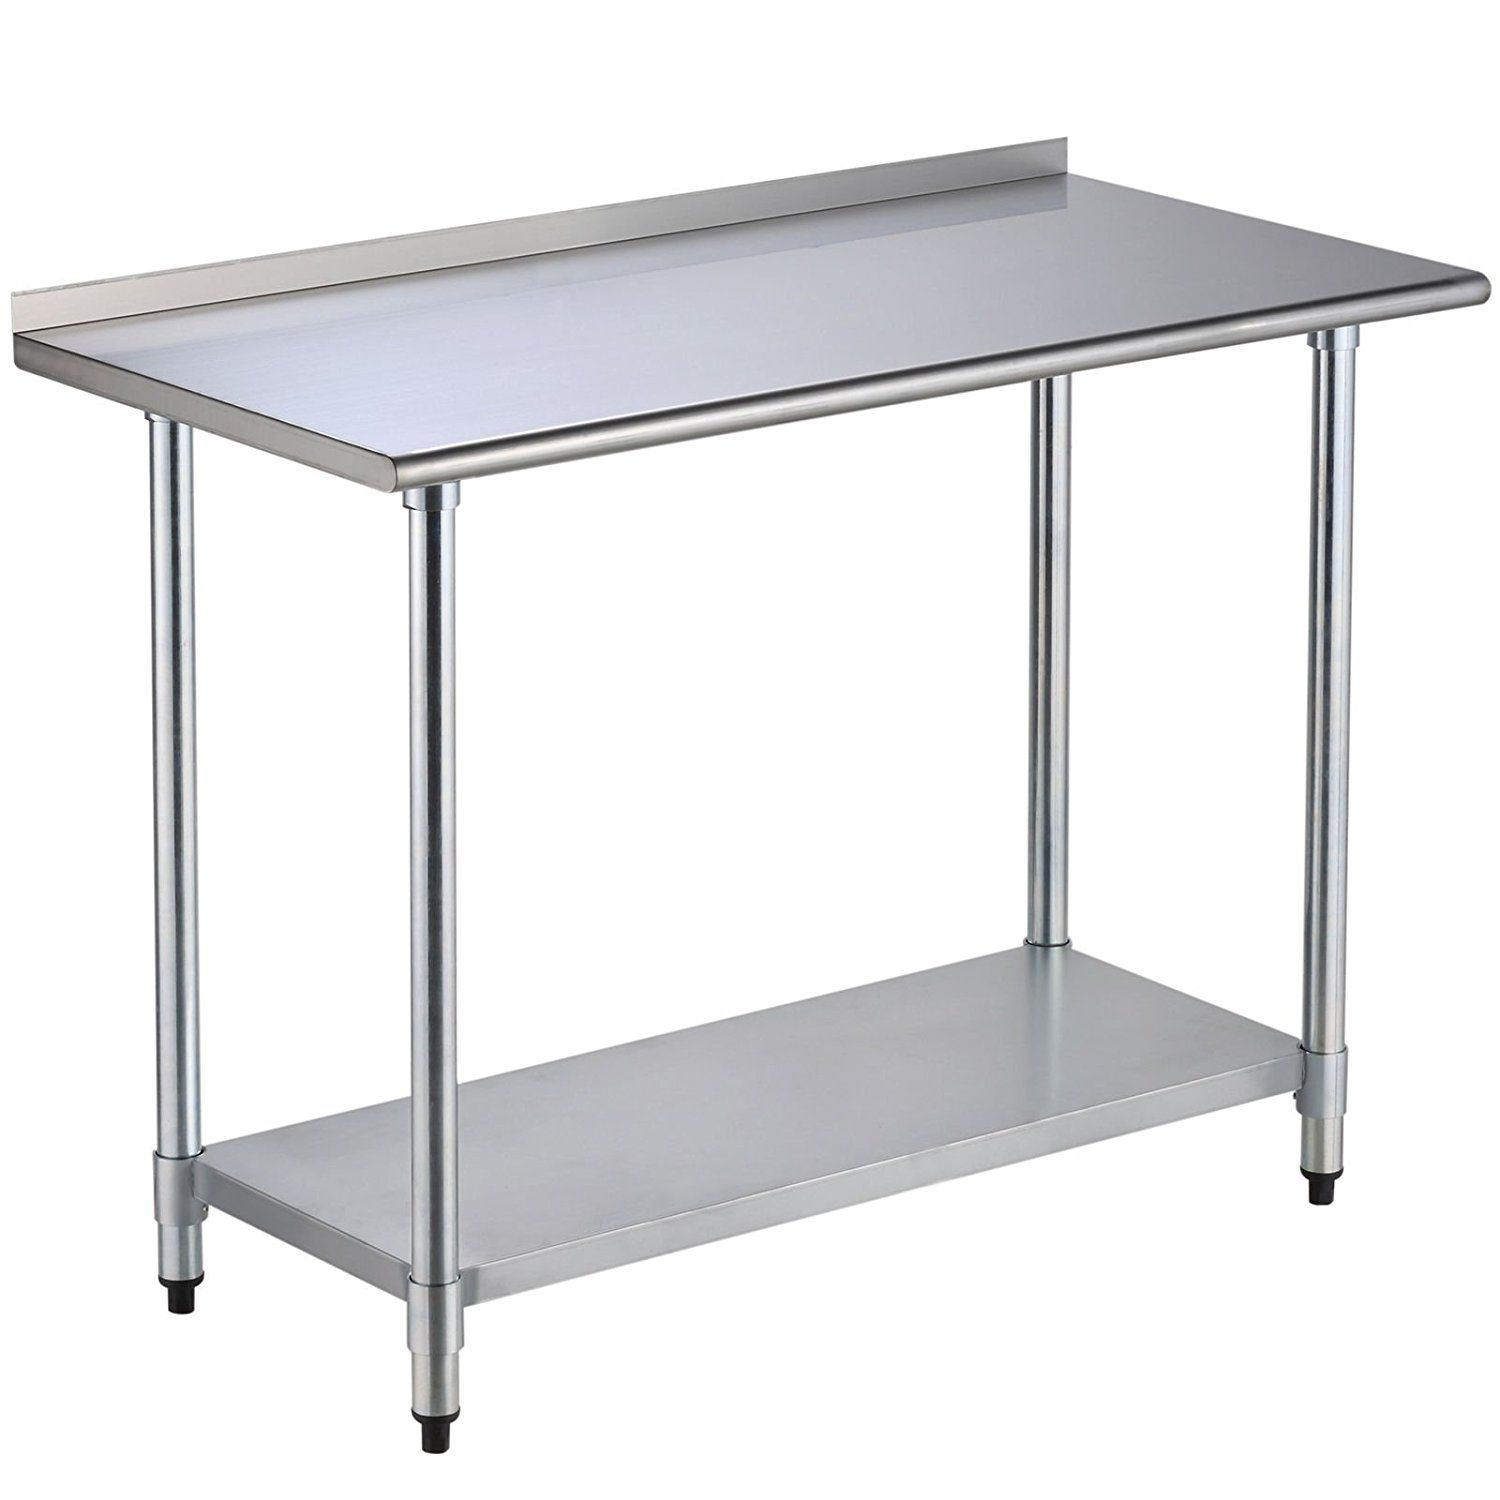 Amazon Com Uenjoy 24 X 48 Stainless Steel Work Prep Table With Backsplash Kitchen Stainless Steel Work Table Metal Restaurant